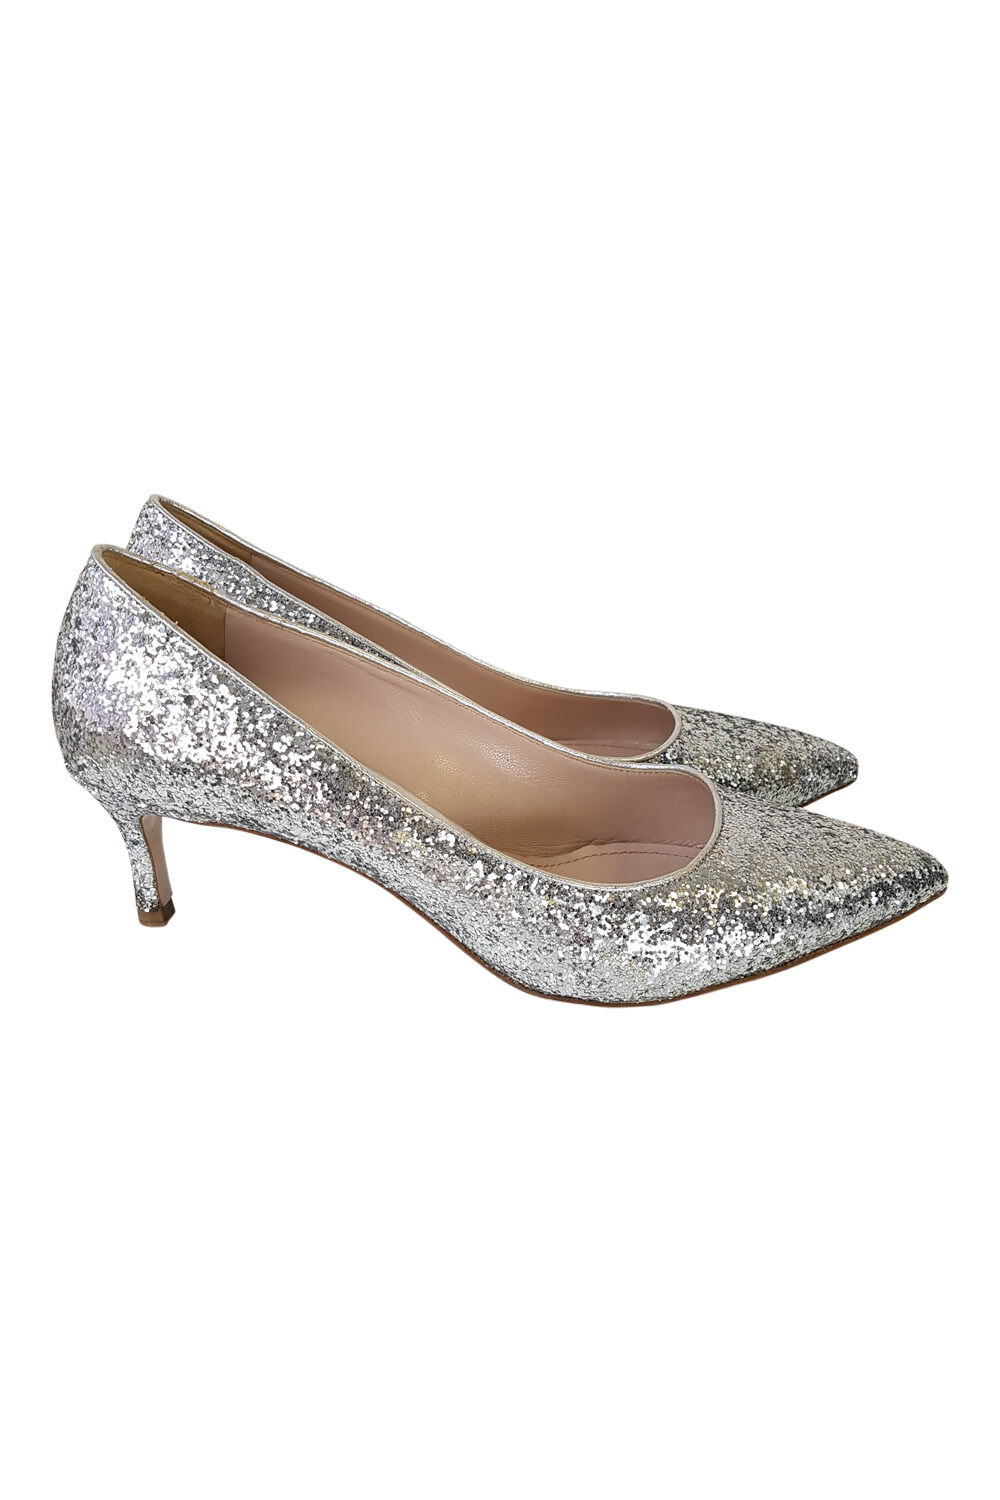 MIU MIU  argent paillettes bout pointu Escarpins (UK 5.5)